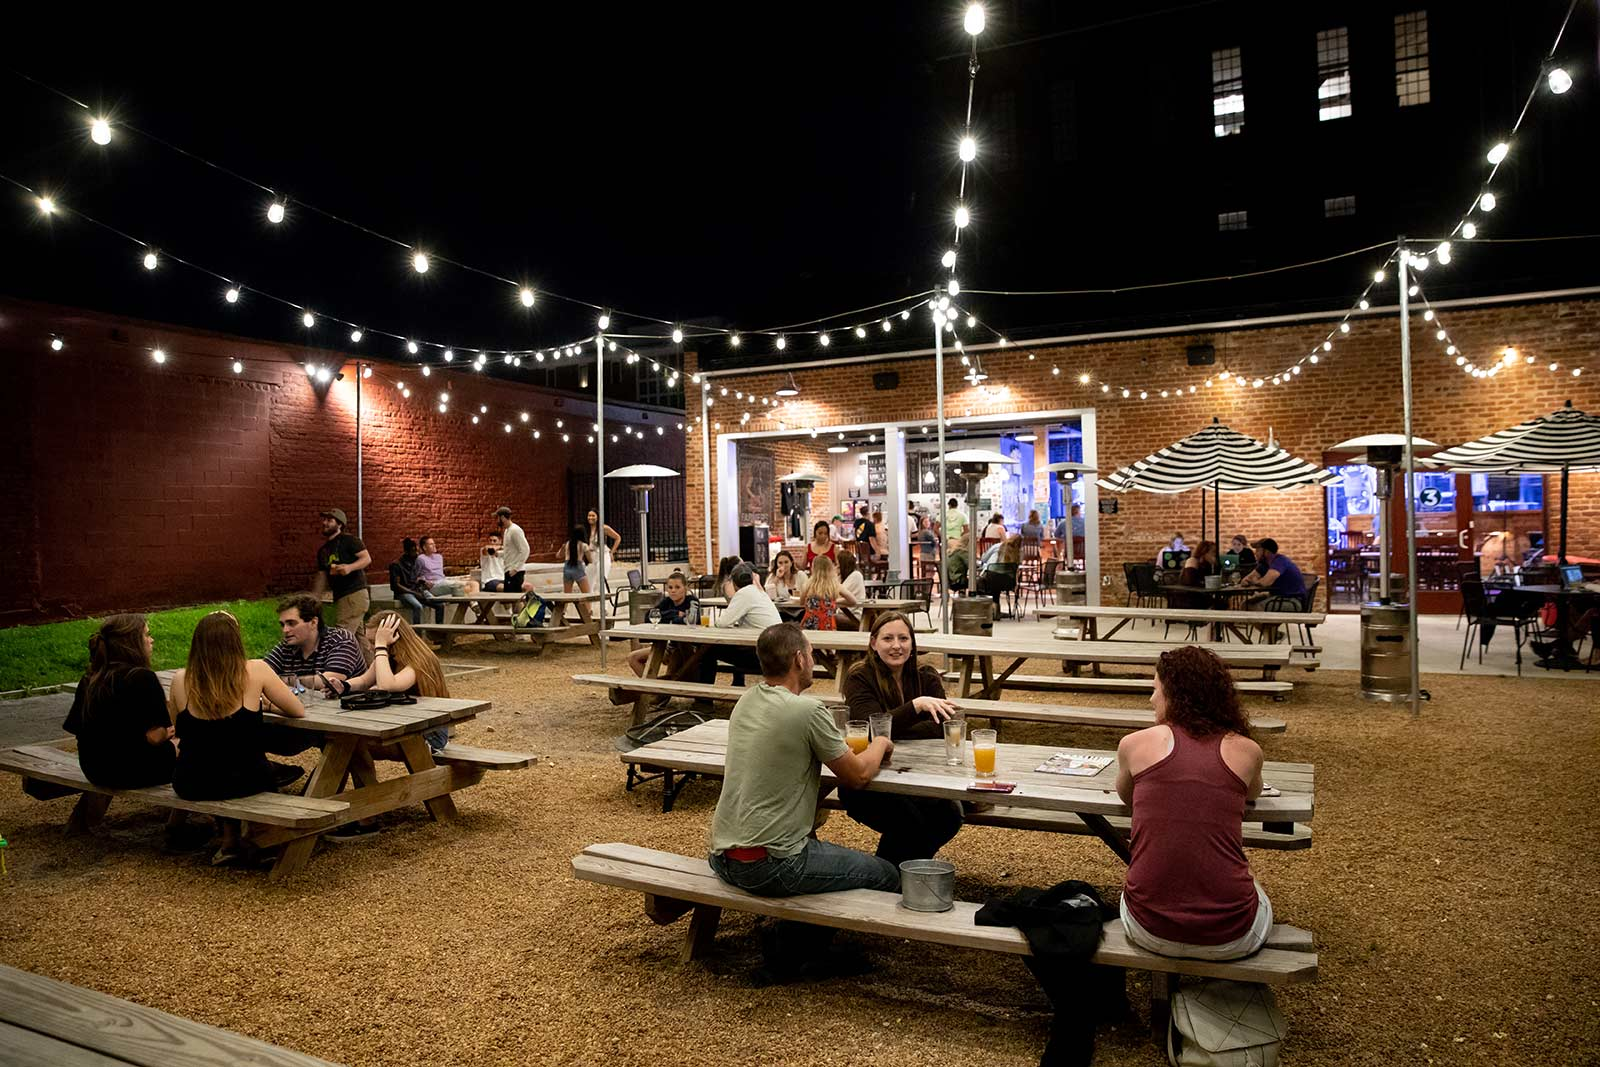 There are several live music and entertainment venues located just a few blocks from campus. Three Roads Brewing Company is one local hangout for students and the Farmville community. Cornhole or trivia, anyone?